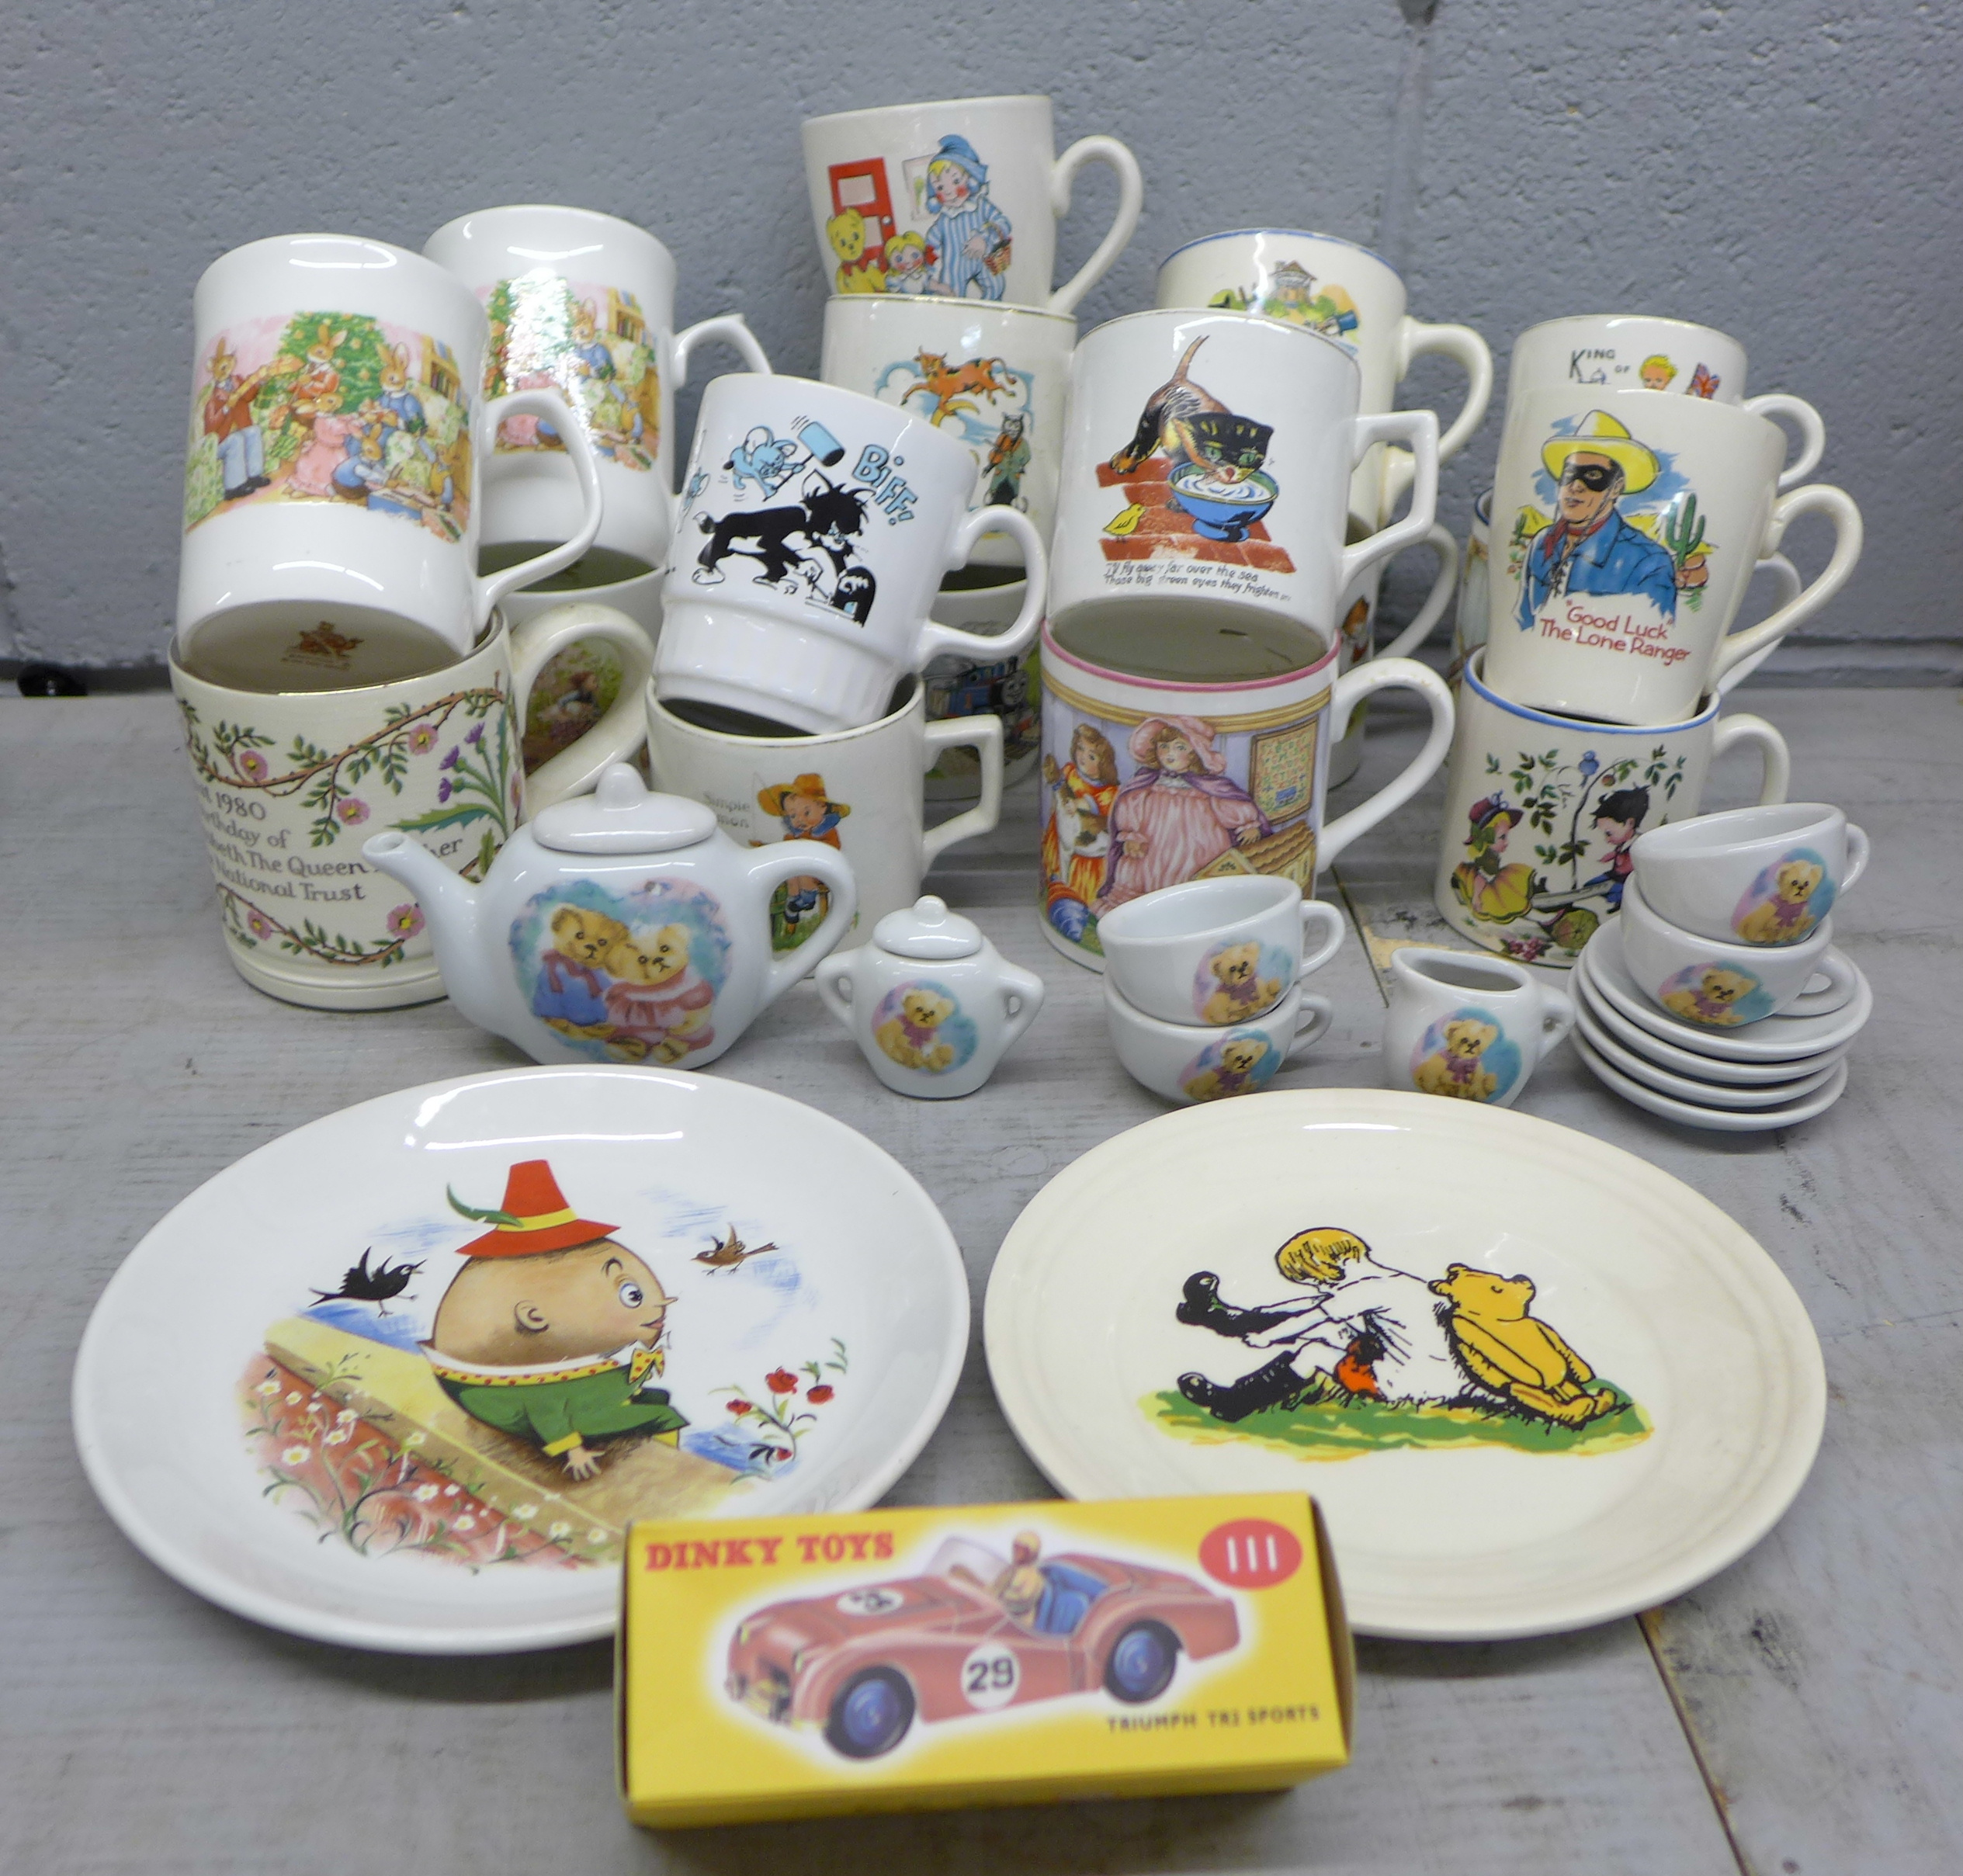 An assortment of childrens mugs, plates, a toy tea set and a Boncath pottery Queen Elizabeth 80th